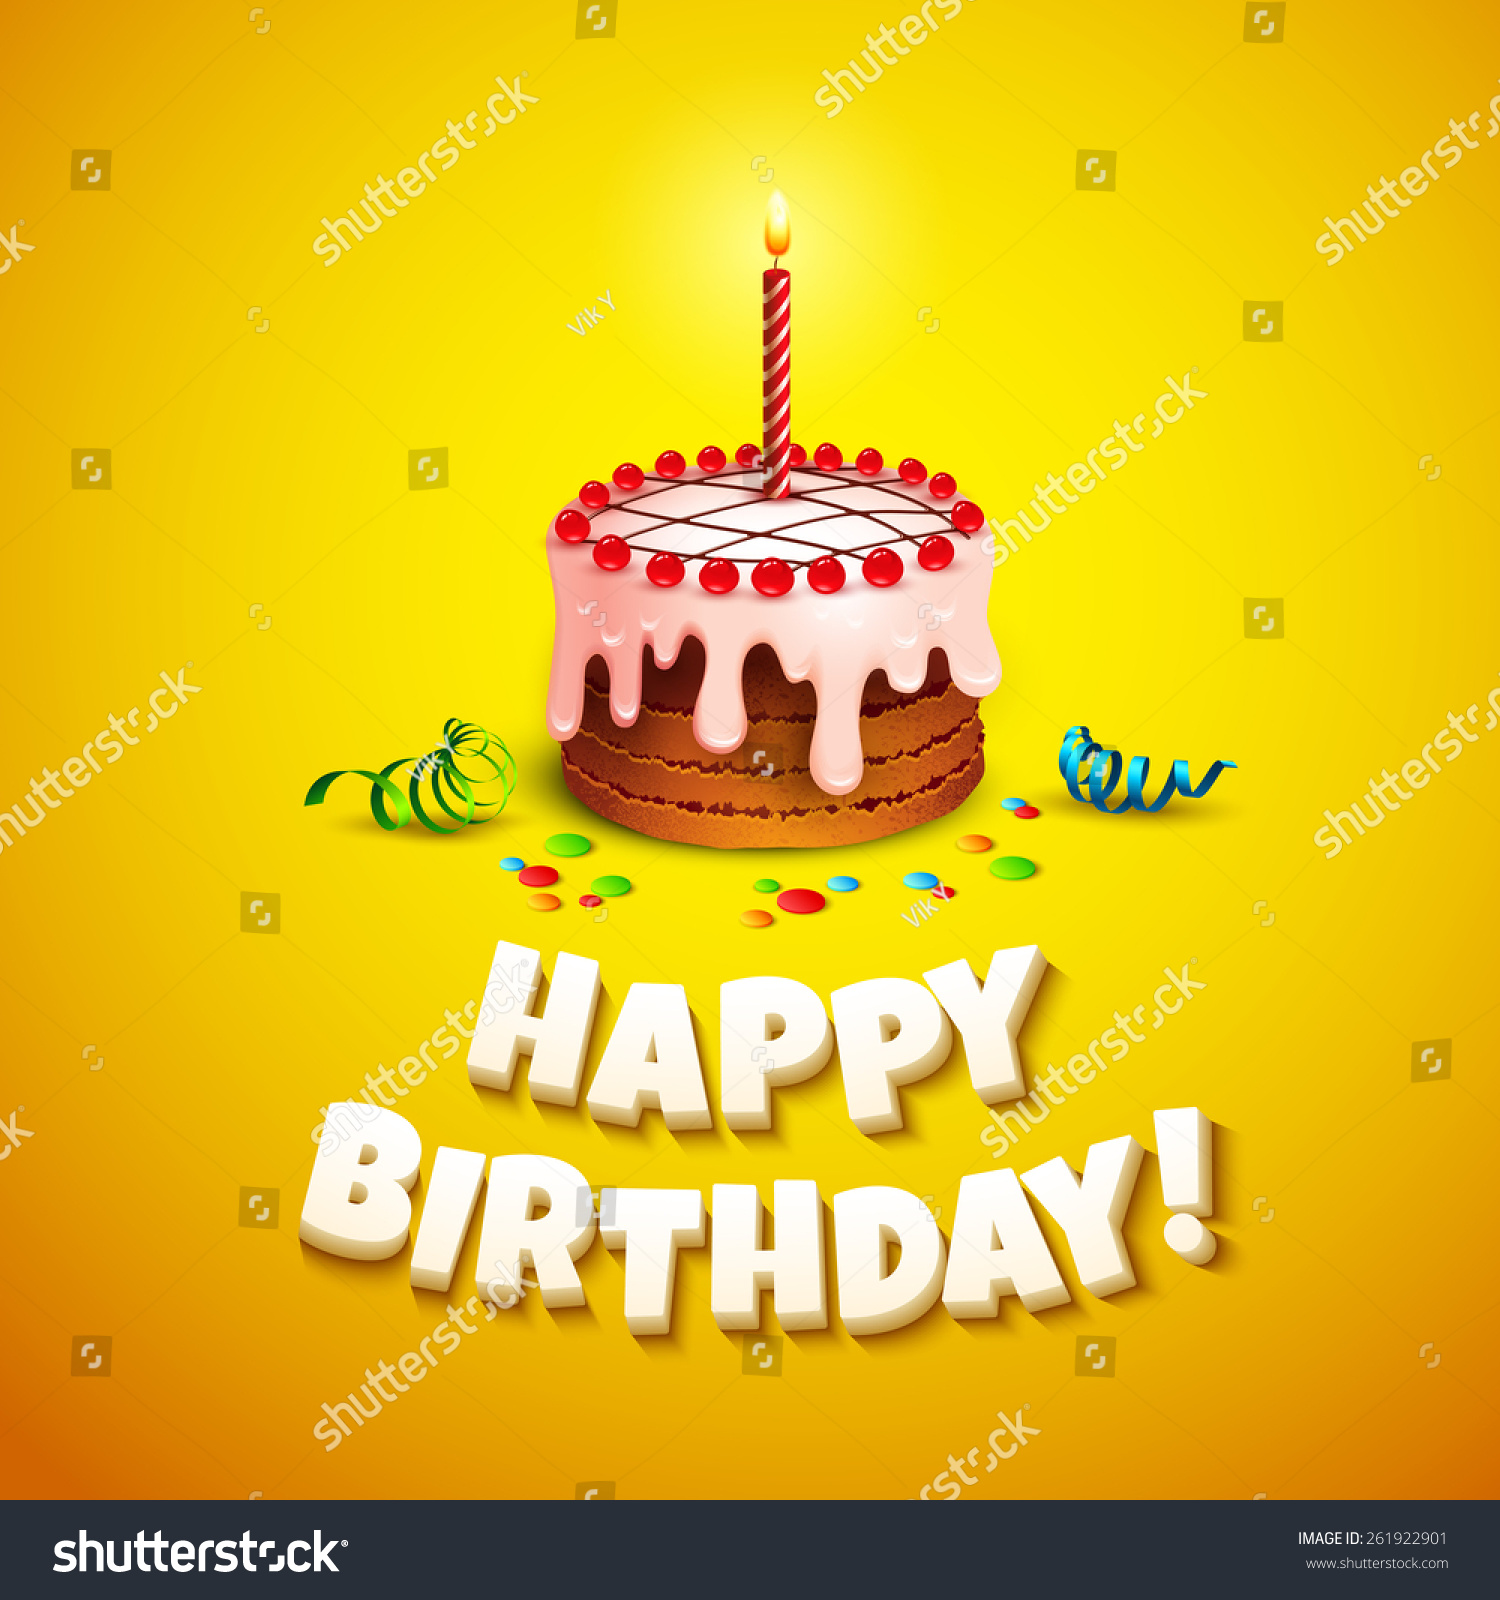 Happy Birthday Greeting Card Cake Vector Stock Vector 261922901